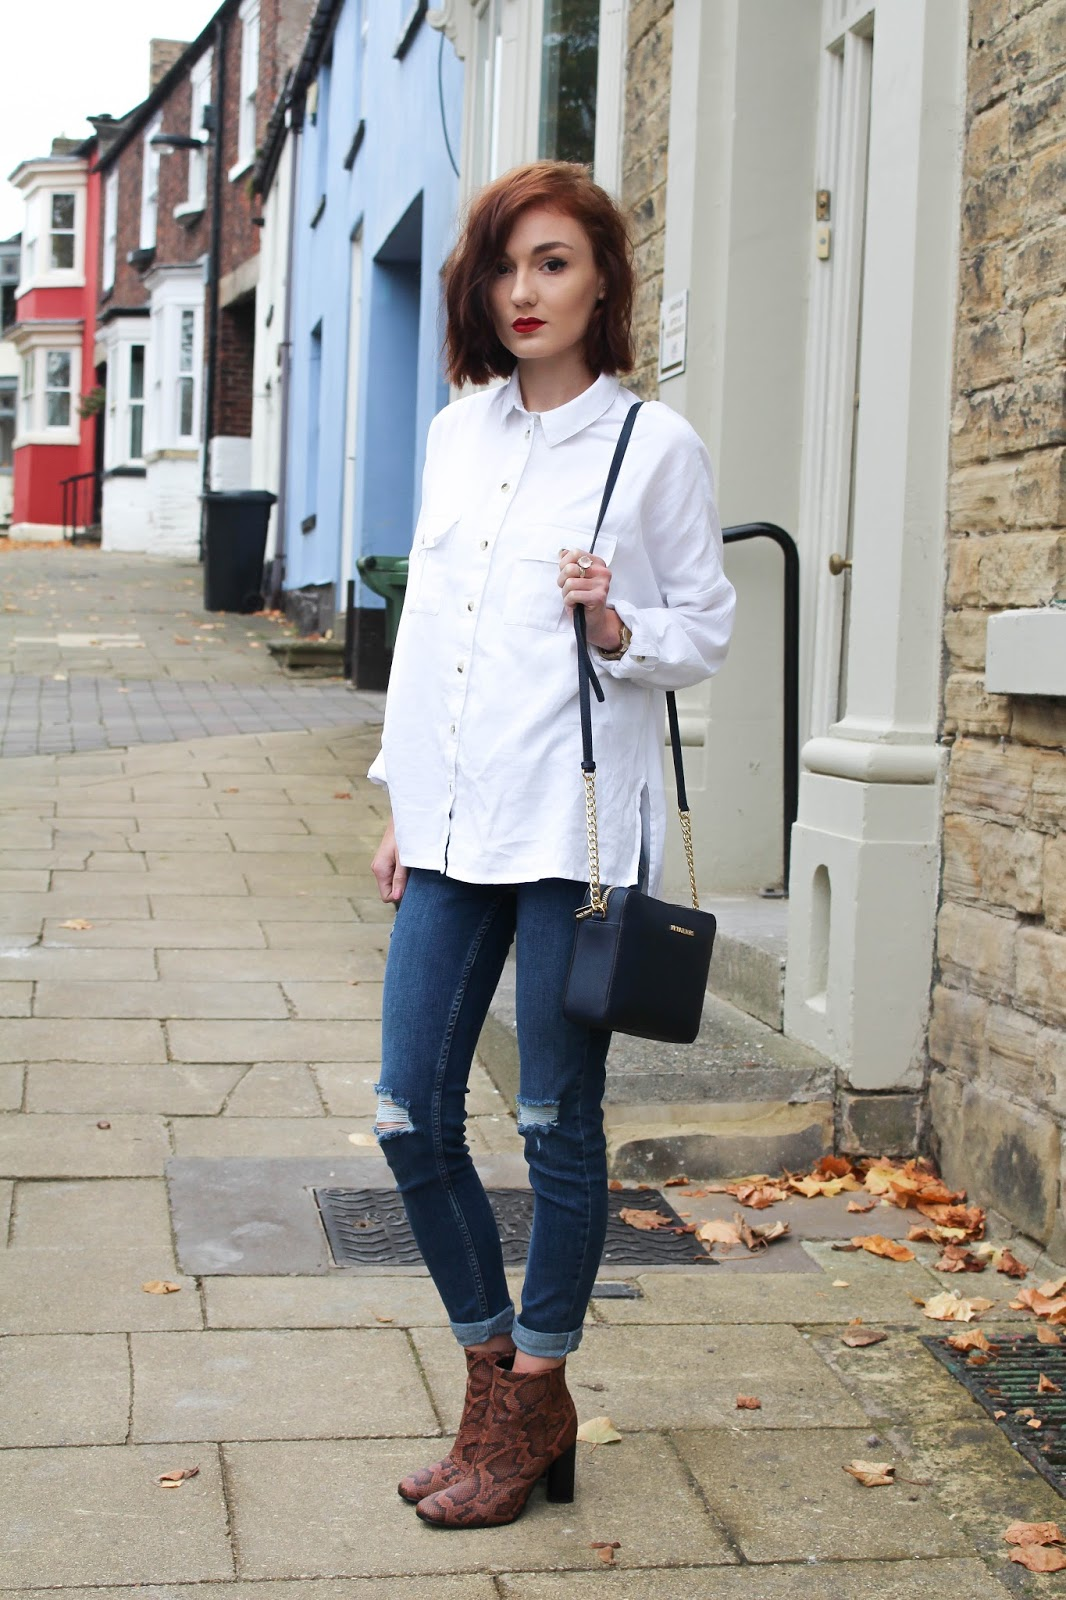 2609905e69cd OVERSIZED WHITE SHIRT, RIPPED LEIGH JEANS: TOPSHOP / SNAKE PRINT ANKLE  BOOTS: H&M (similar) / SHOULDER BAG: MICHAEL KORS / Warning, there are  amazing boots ...